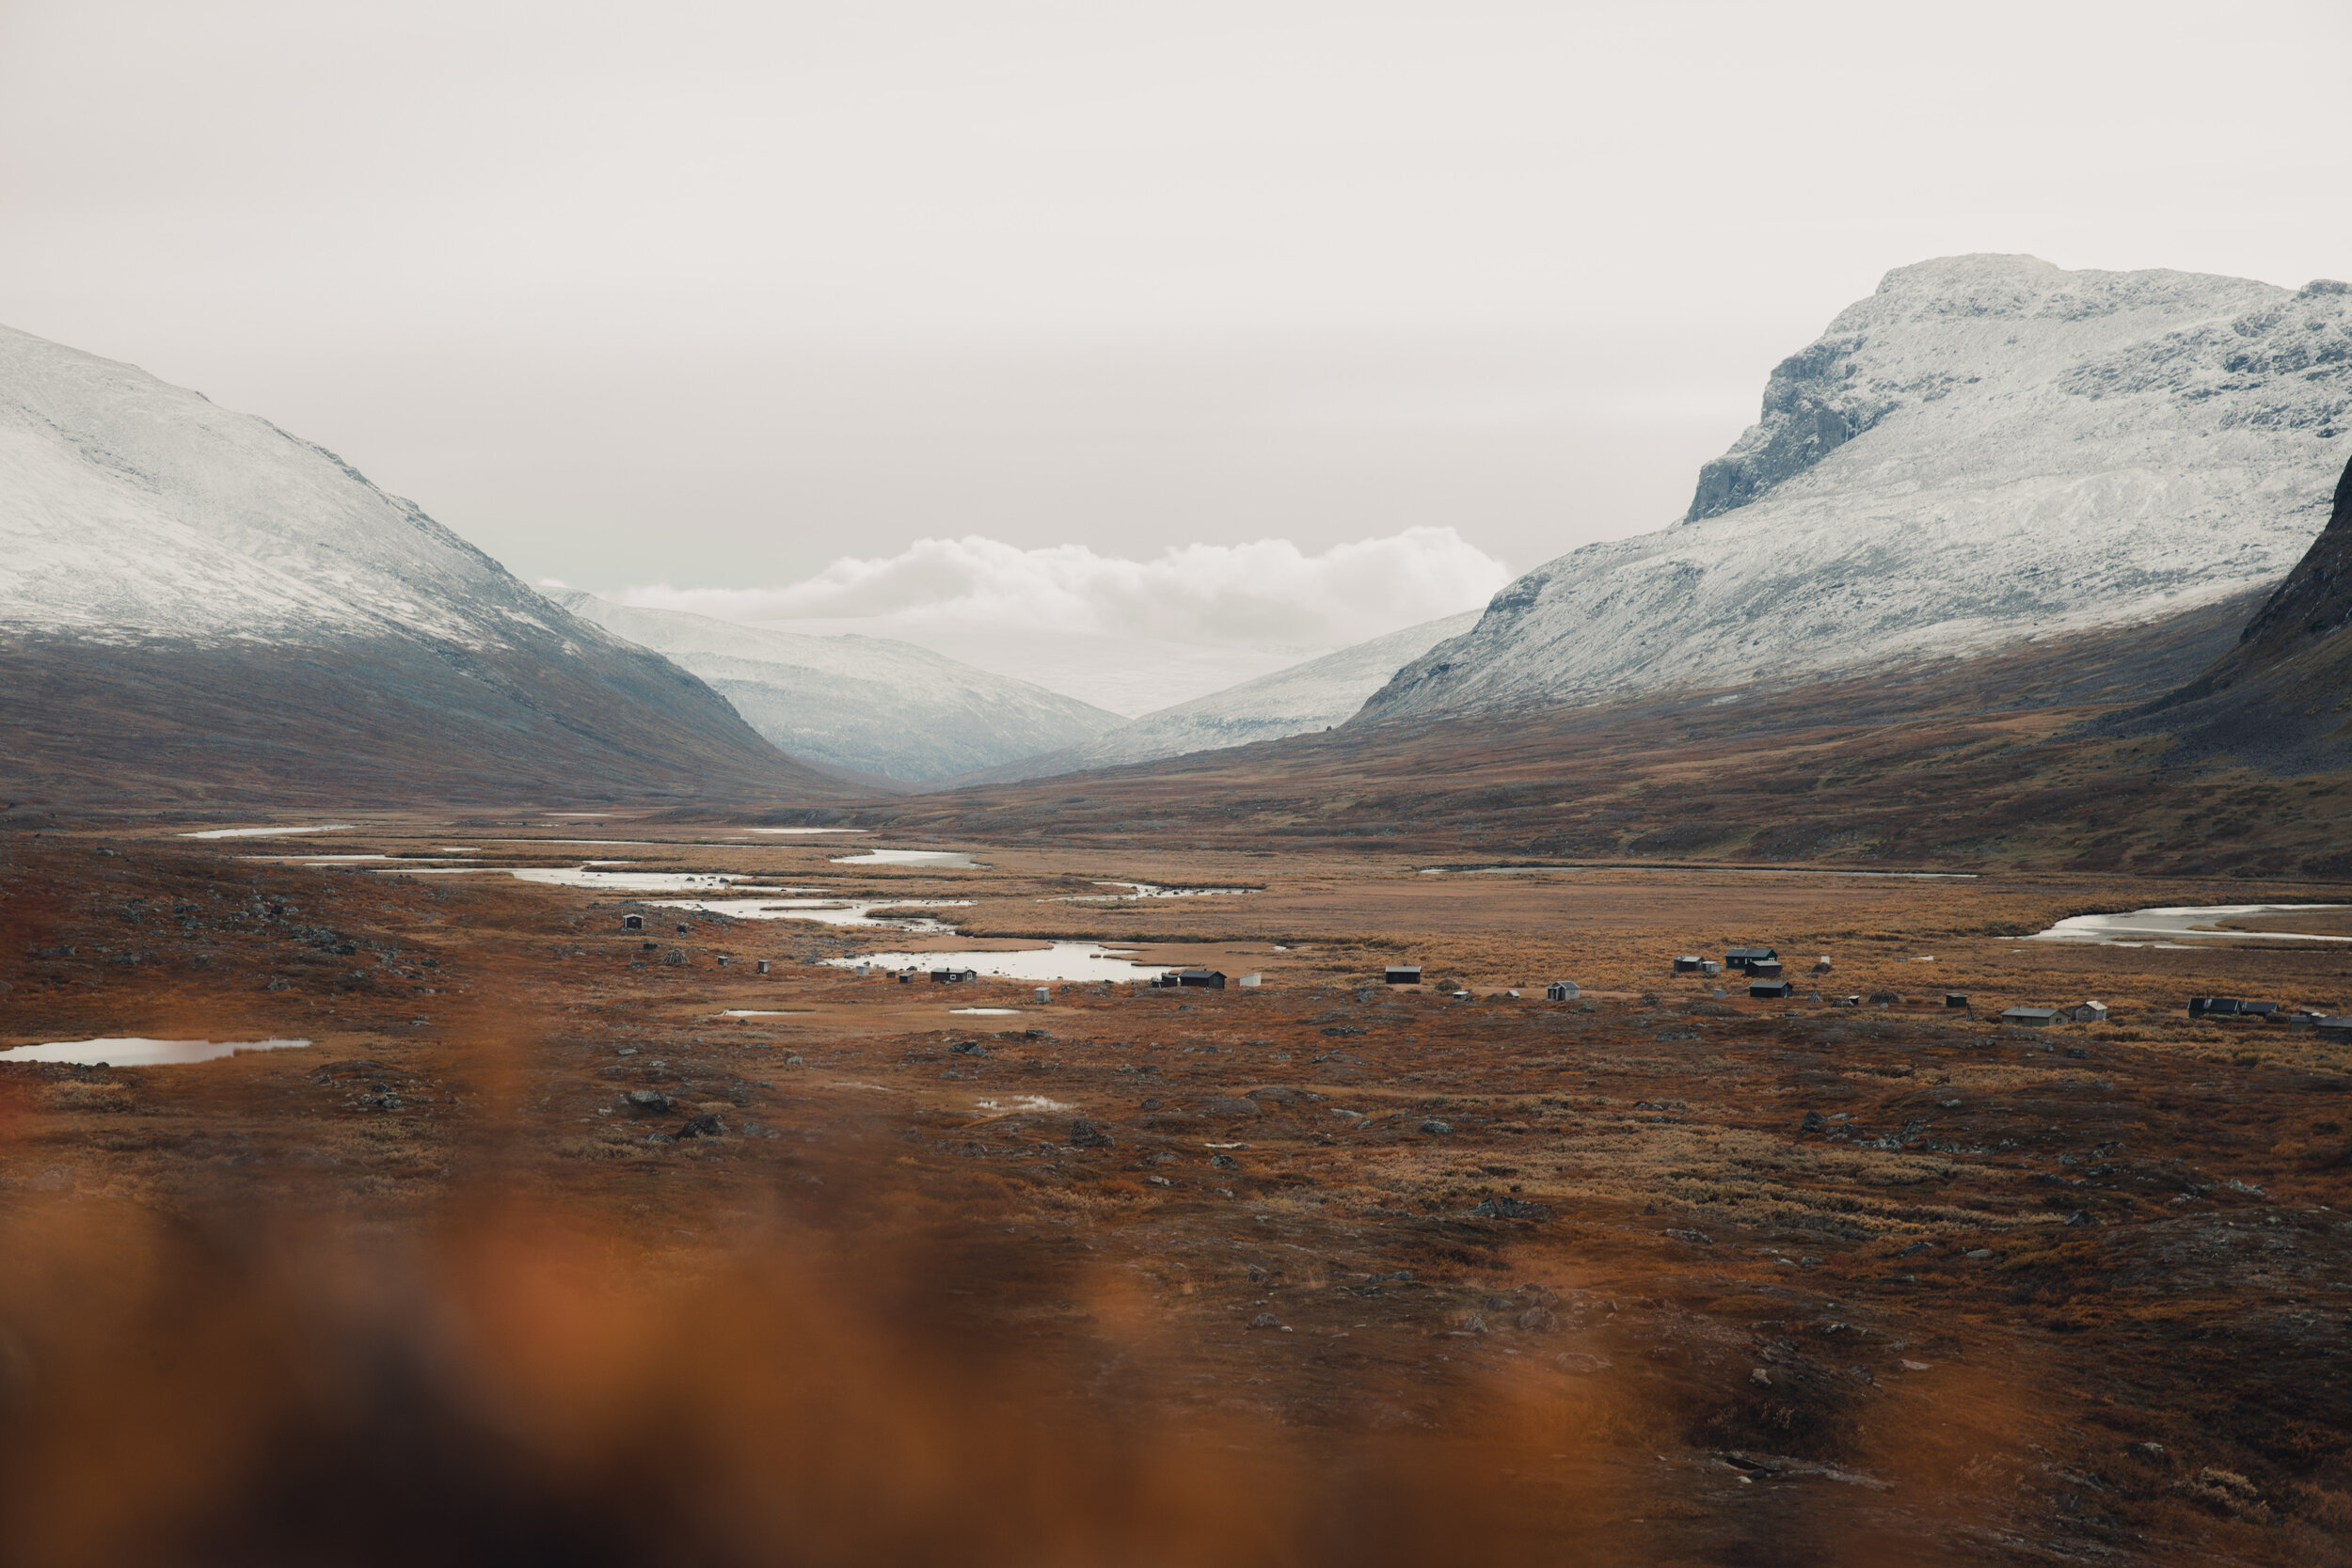 The Sami summer settlement was all quiet since we were quite far into fall.